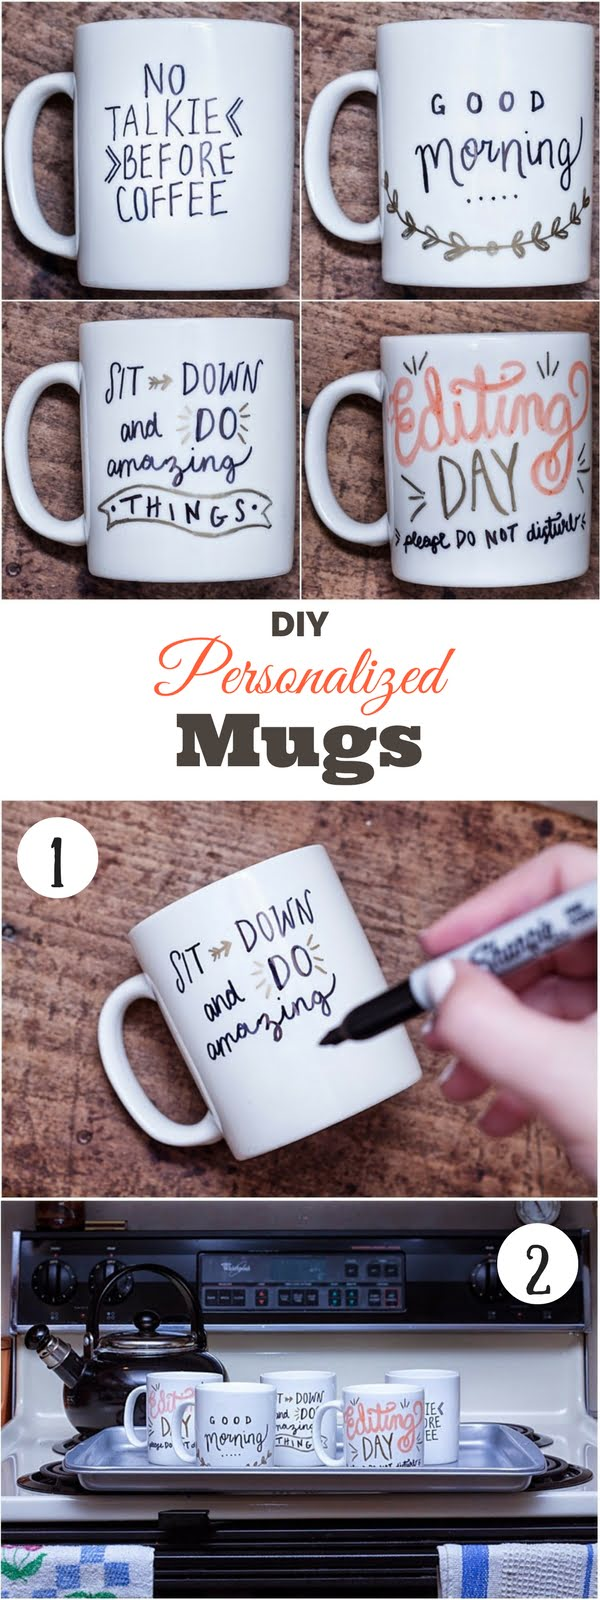 Check out how to make your own DIY personalized mug